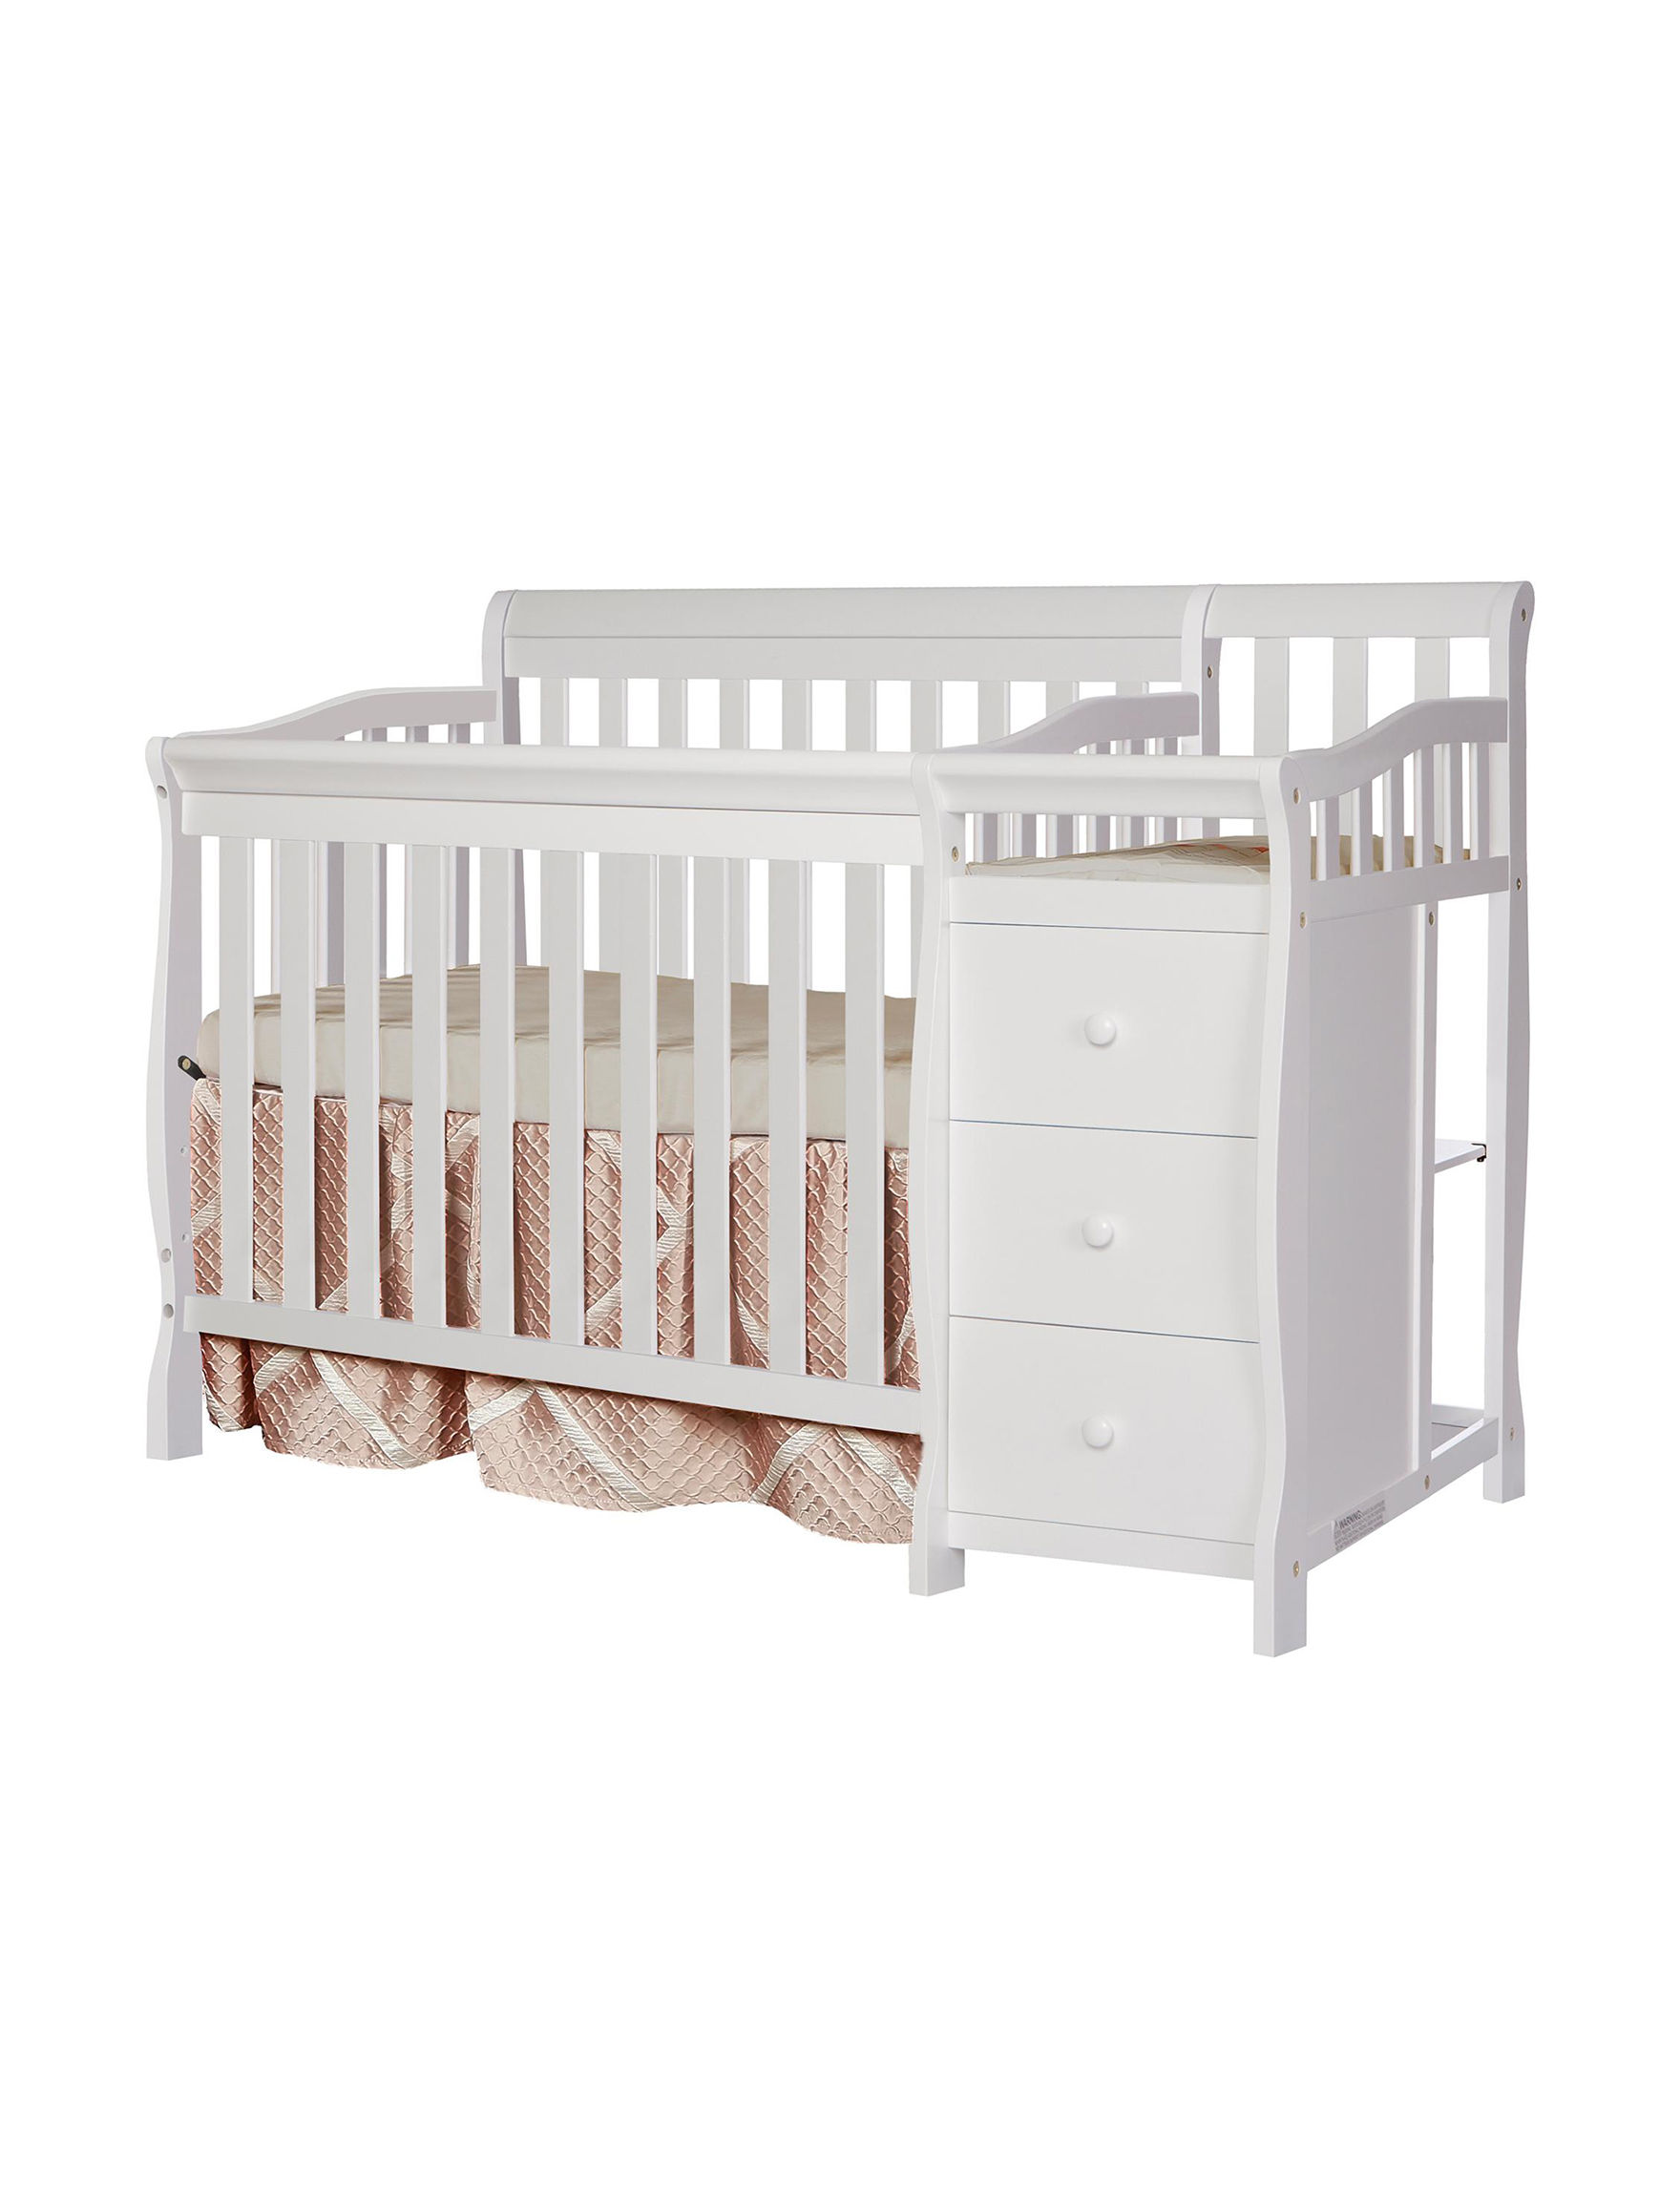 Dream On Me White Changing Tables Cribs Bedroom Furniture